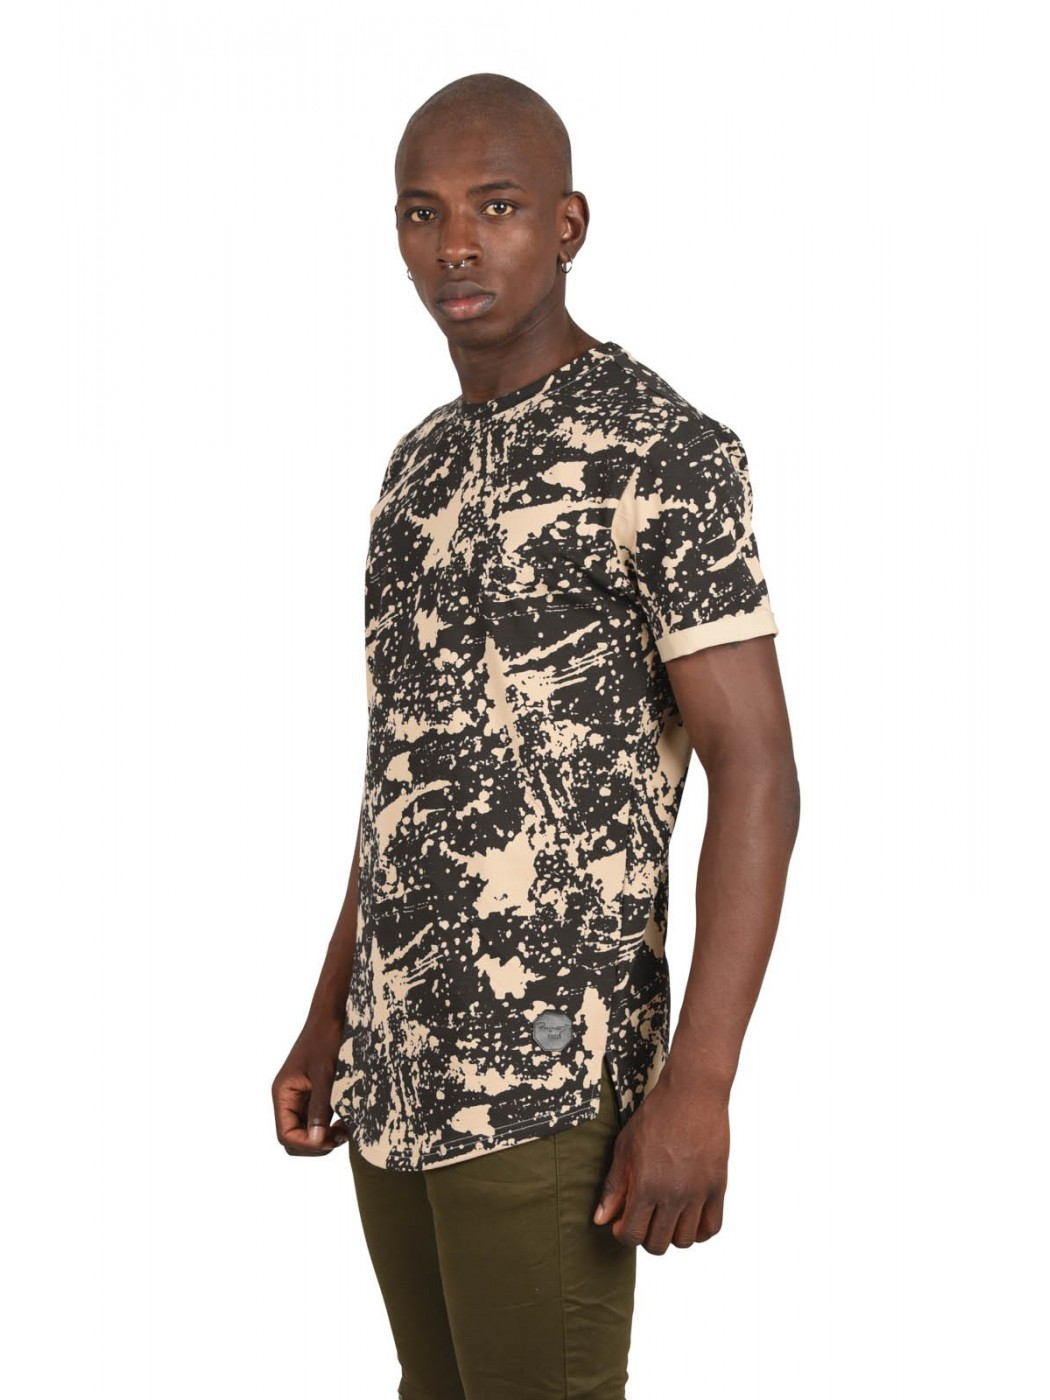 b467906fc80 Men s Longline T-Shirt with Splatter Wash Print Project X Paris